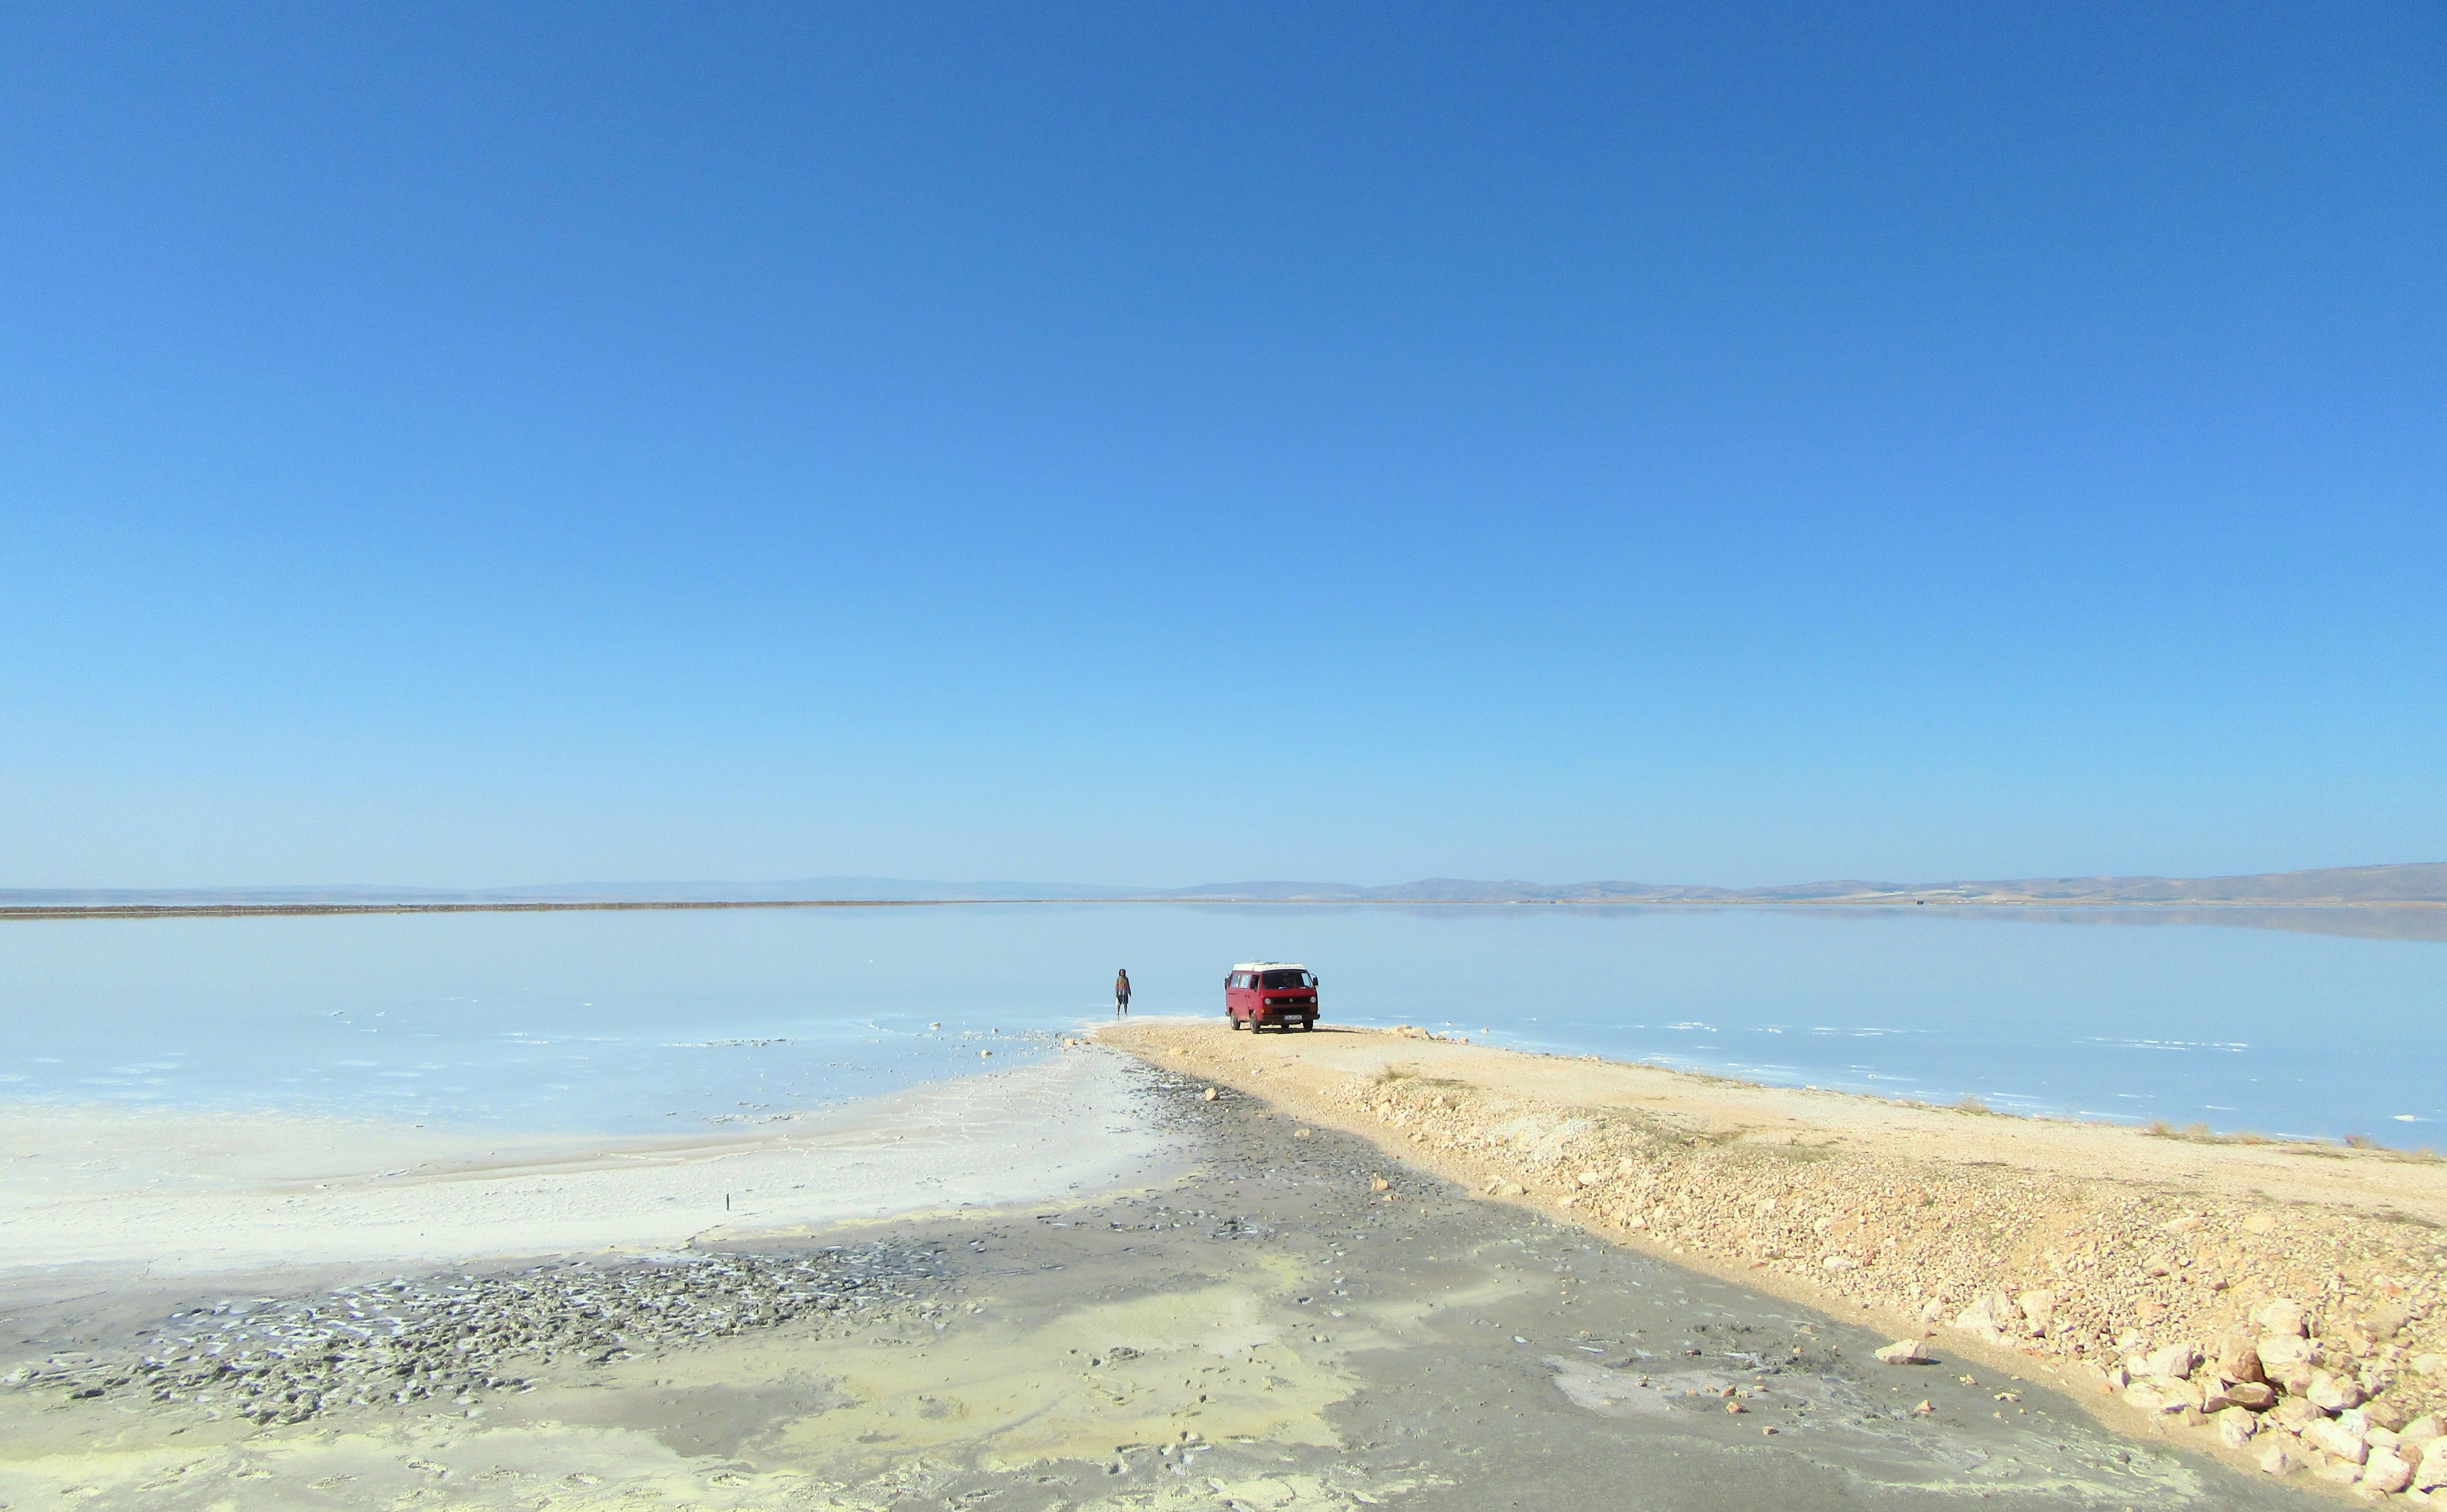 A distant shot of a person standing next to a red van parked on a sandy shore of a vast blue lake